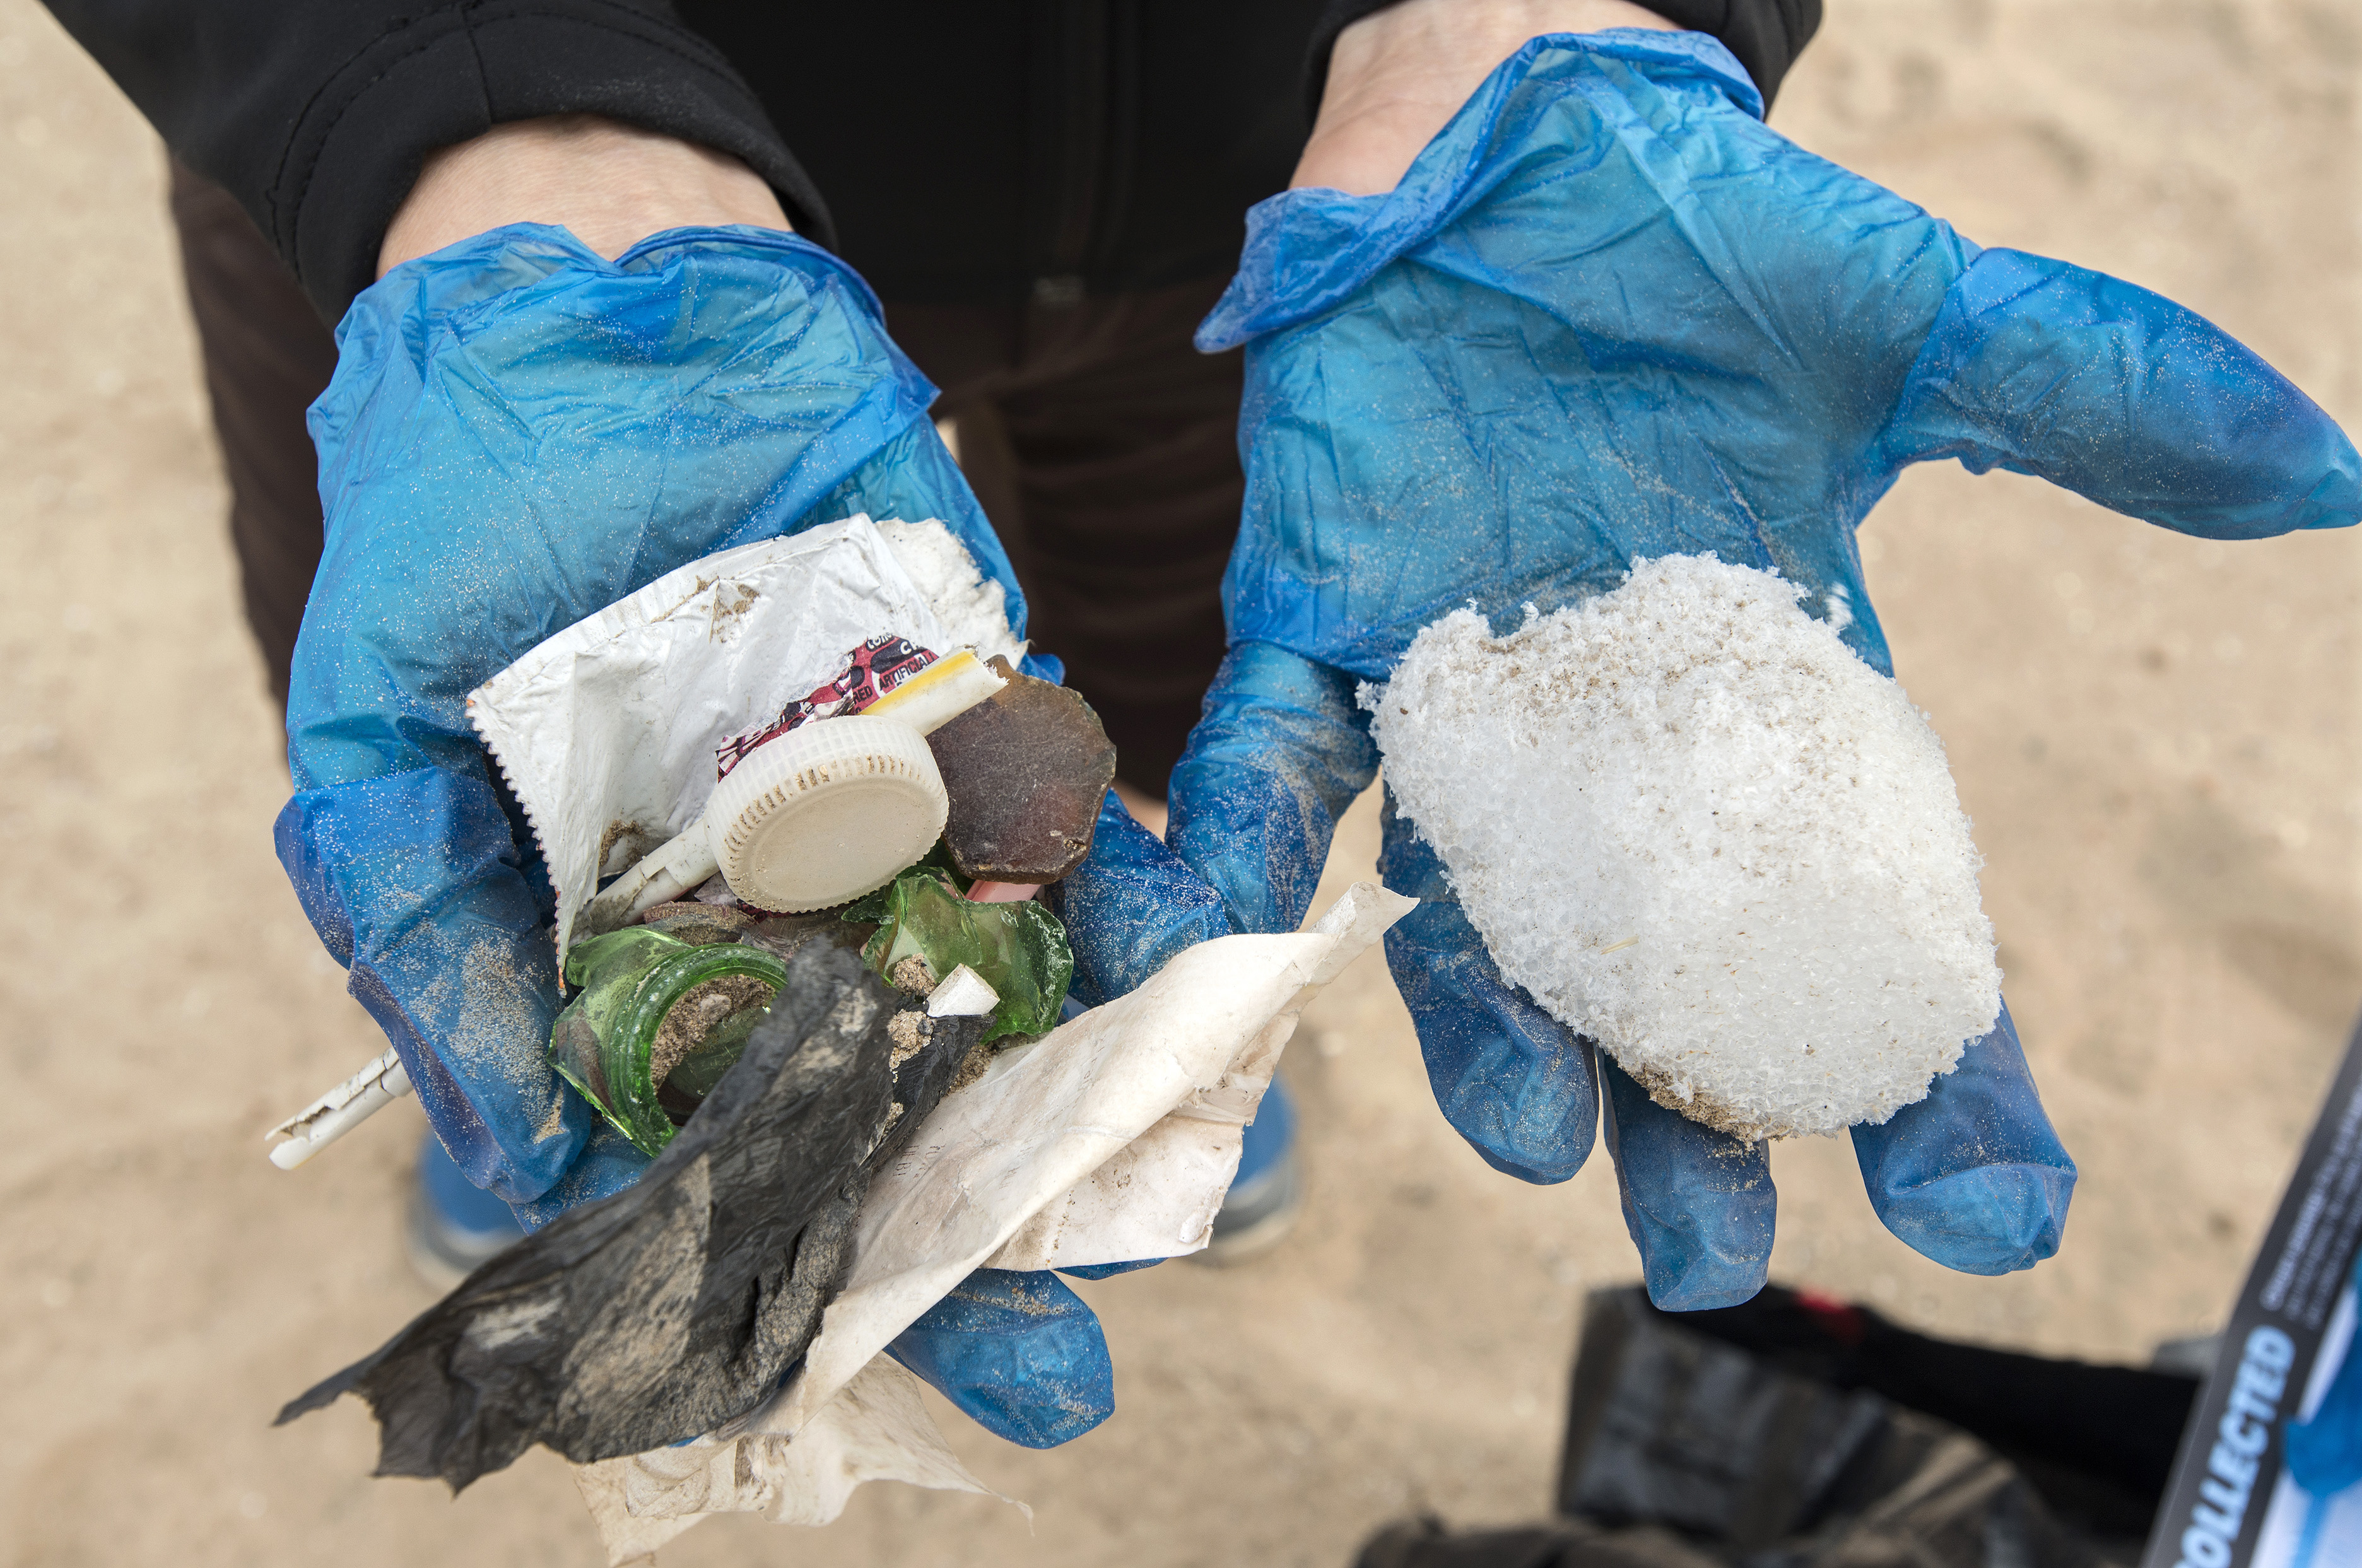 Plastic pollution collected during the September cleanup. Credit: Lloyd DeGrane, Alliance for the Great Lakes.